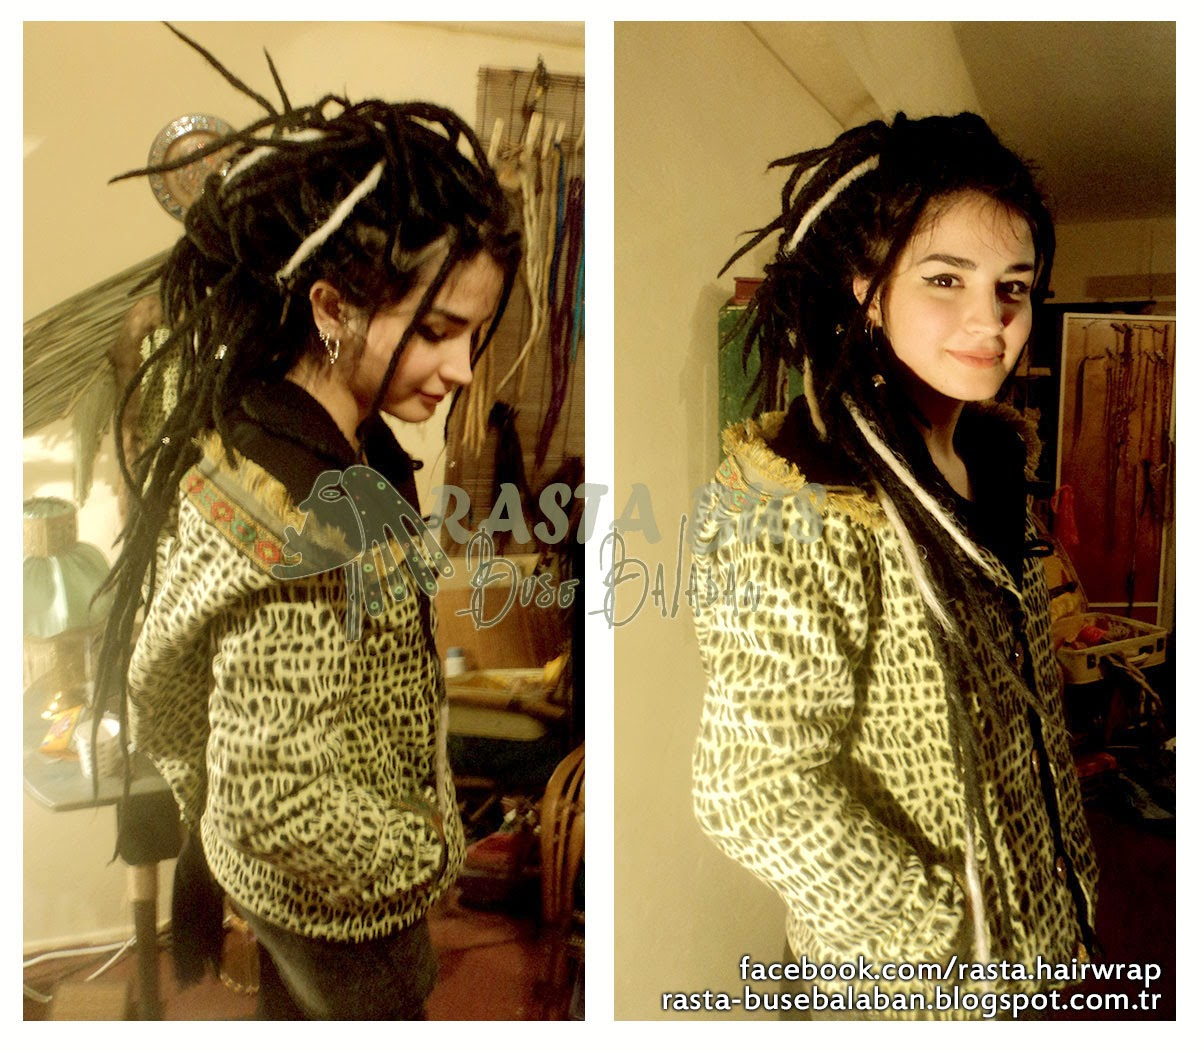 ekli dreadlock rasta (black and white)extensions dreadlock rasta